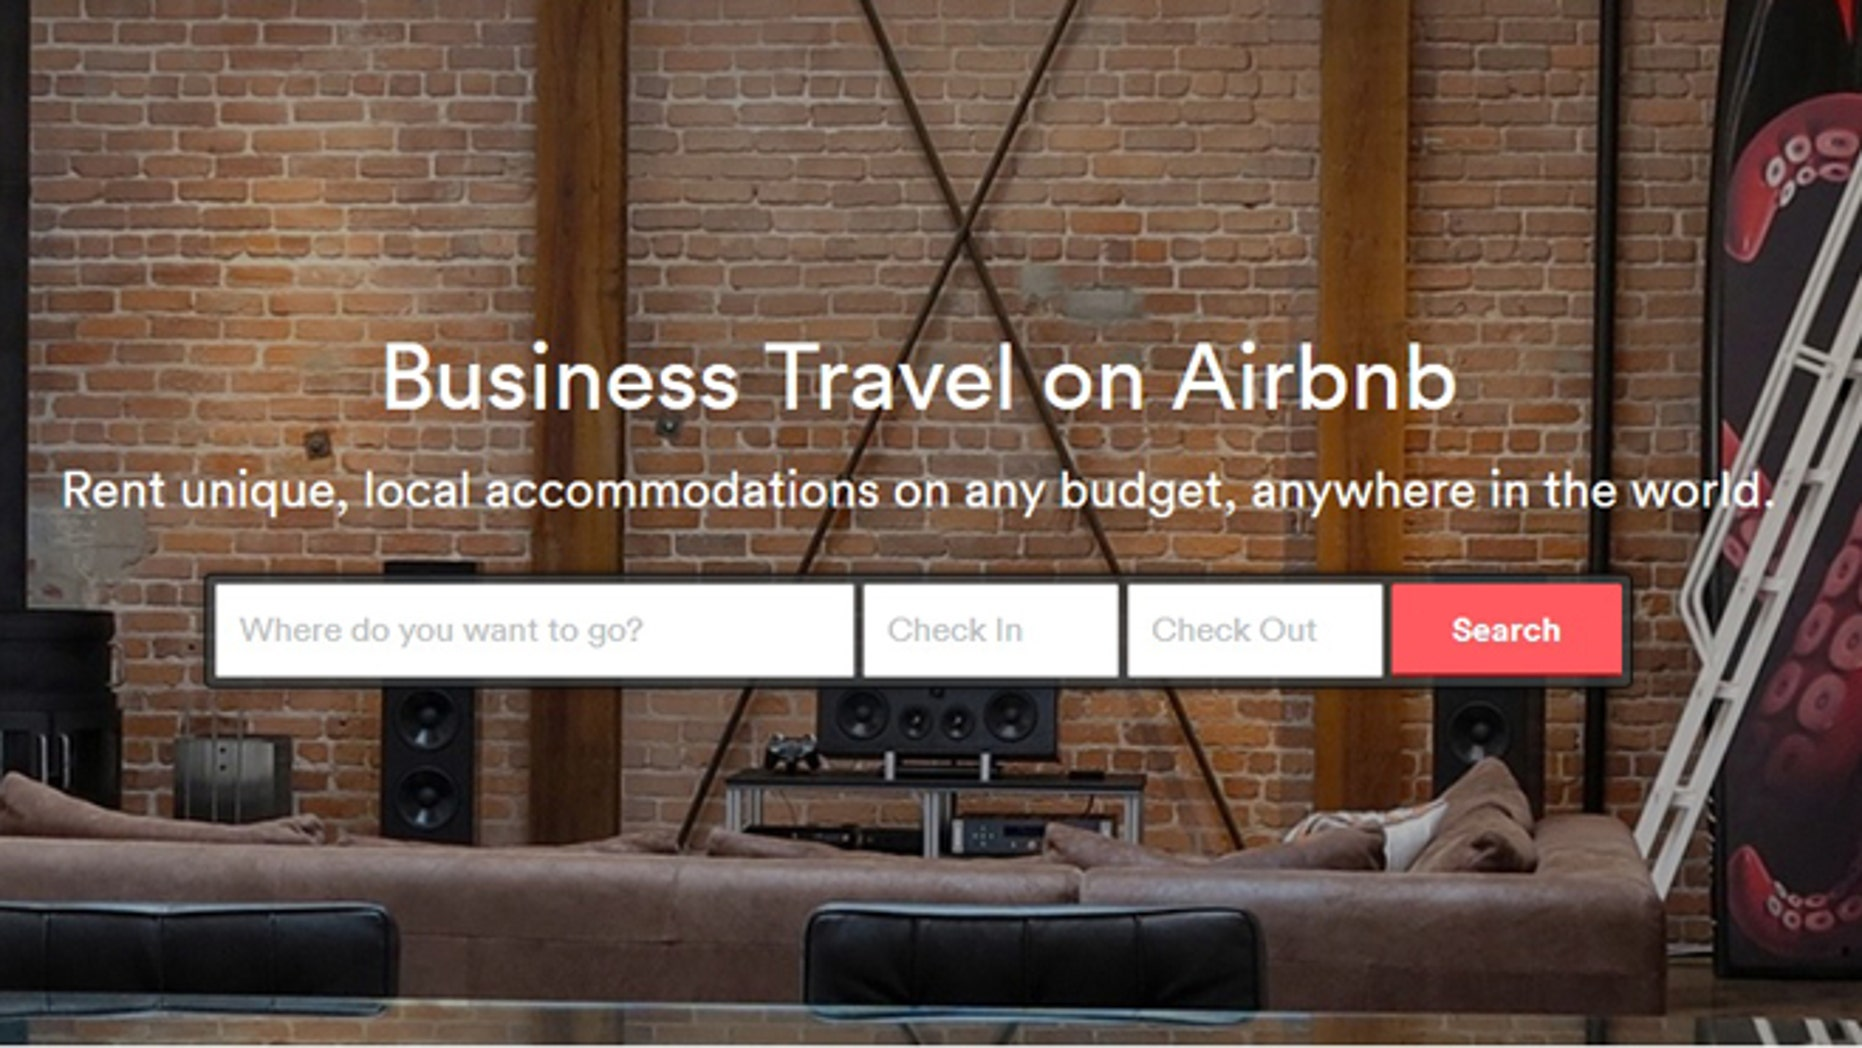 Airbnb is trying to appeal to business travelers.